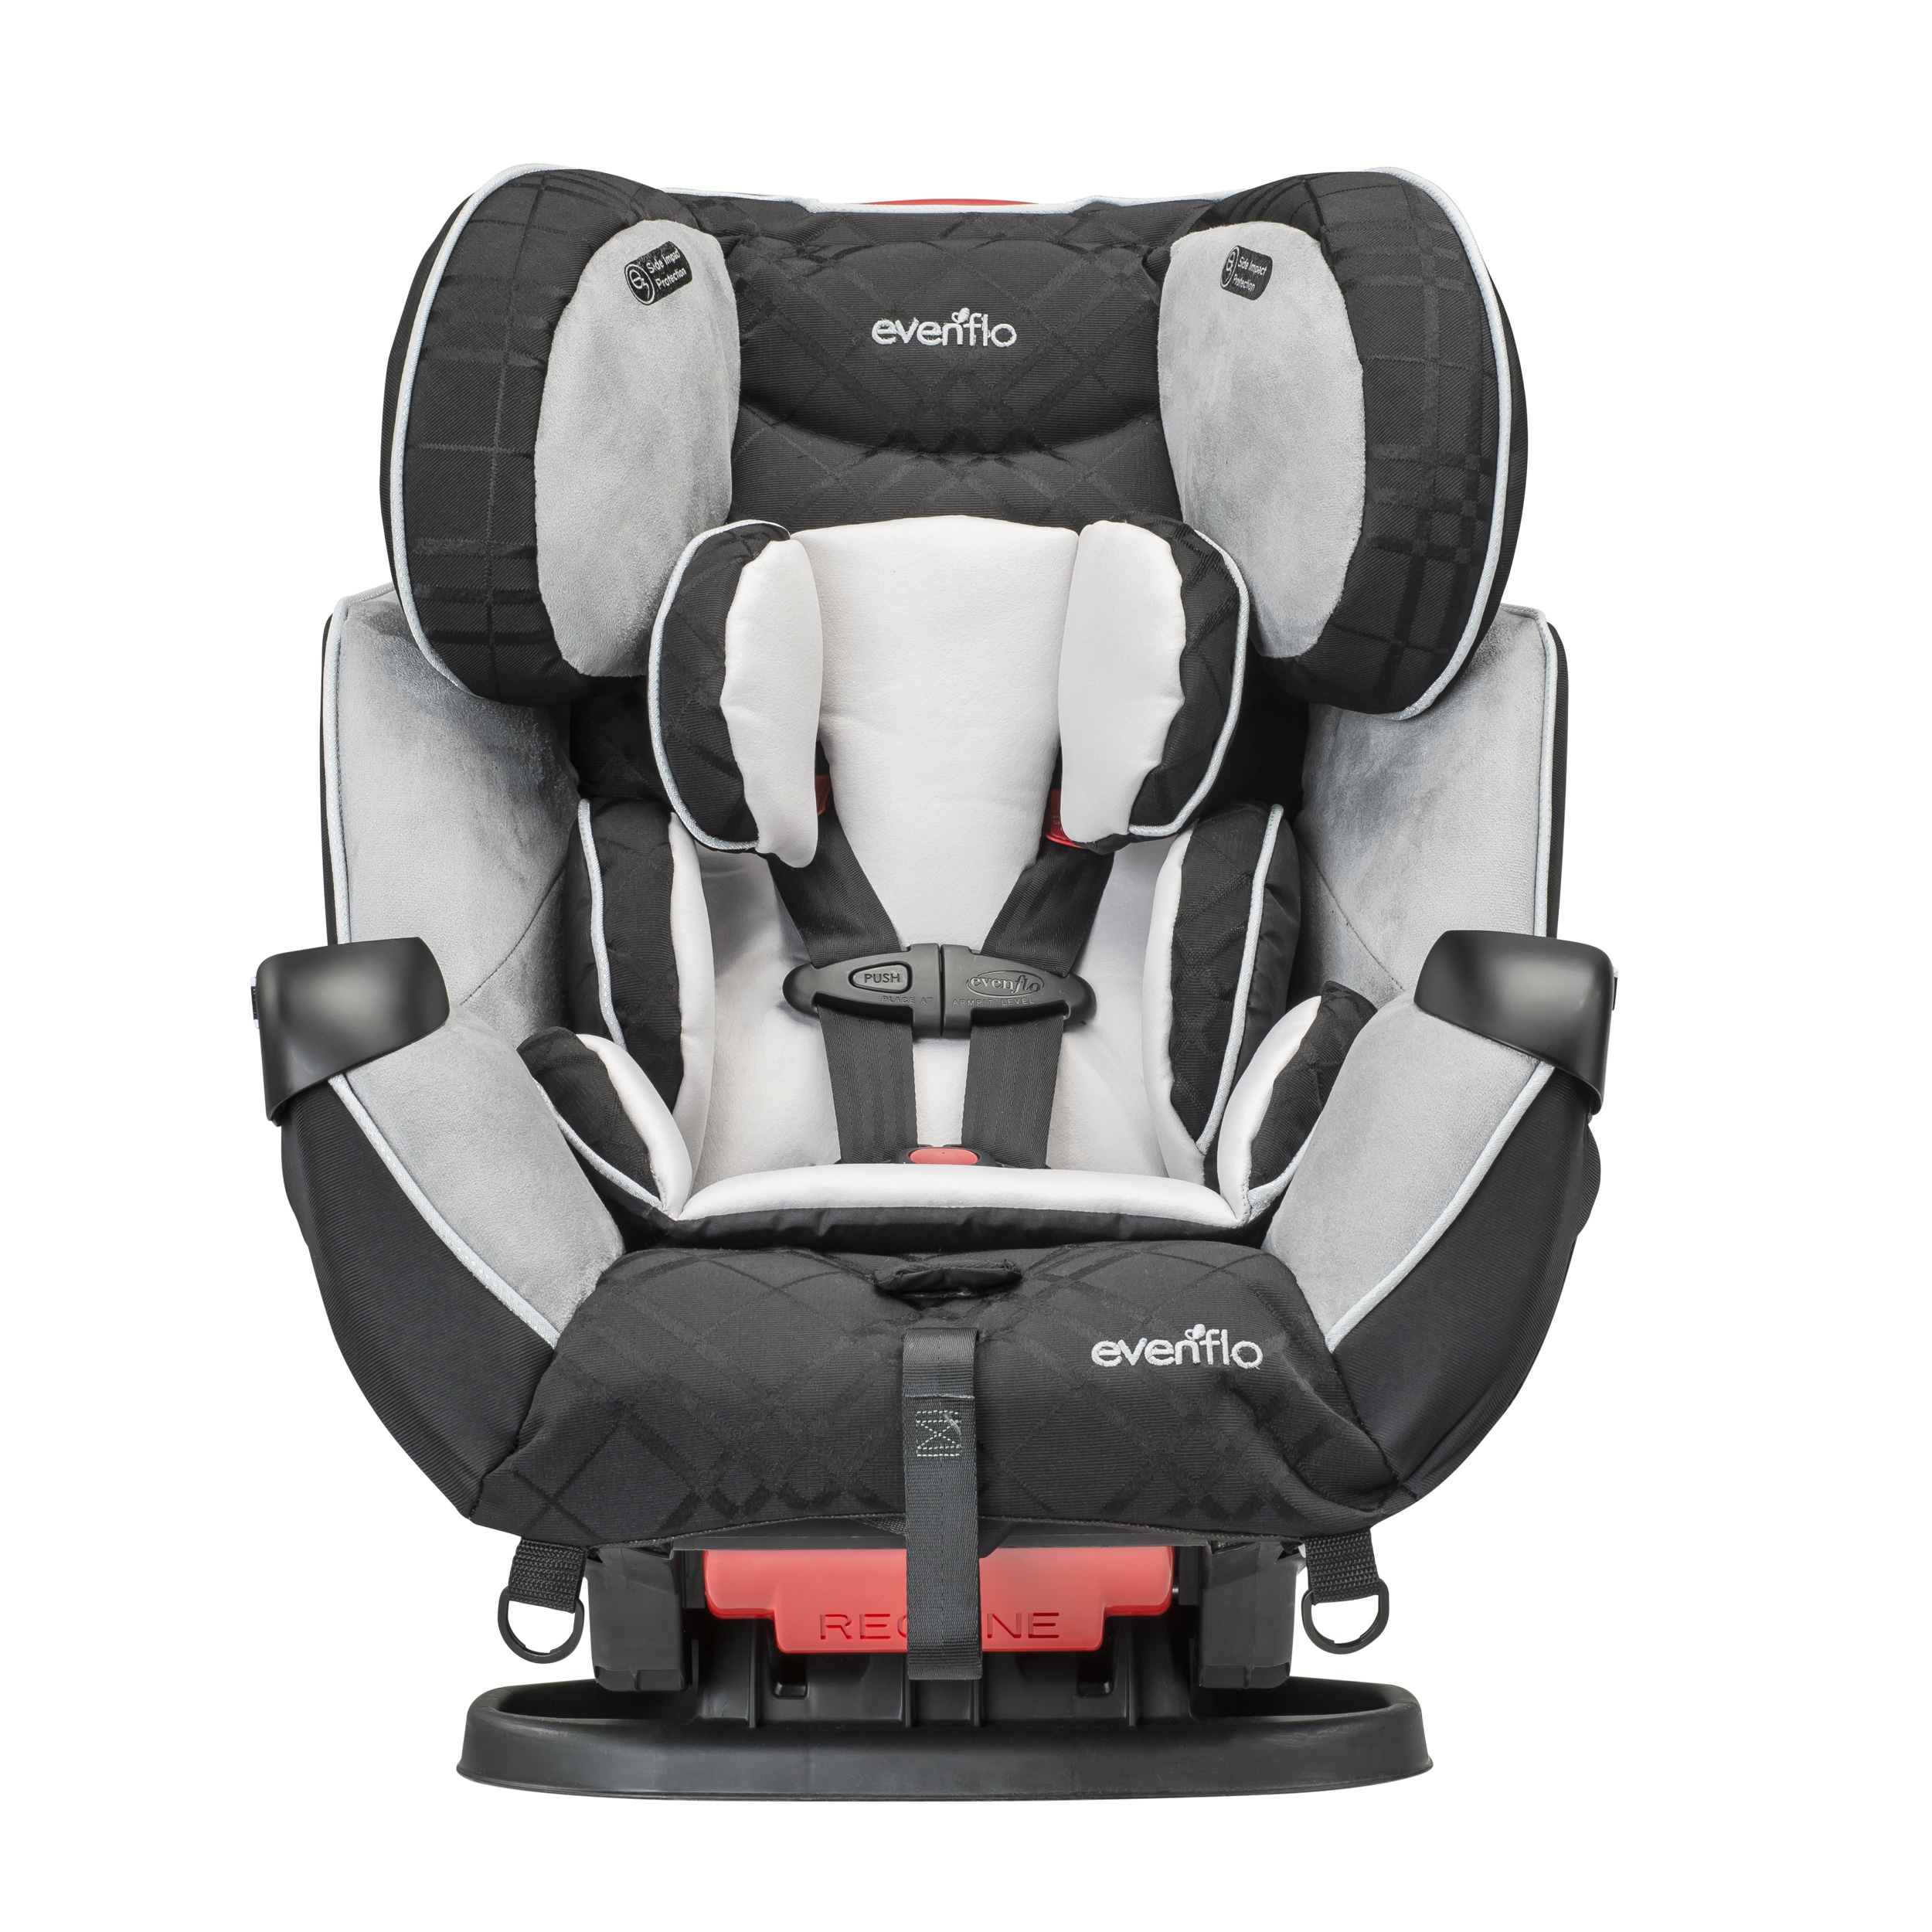 Washing Evenflo Car Seat Cover